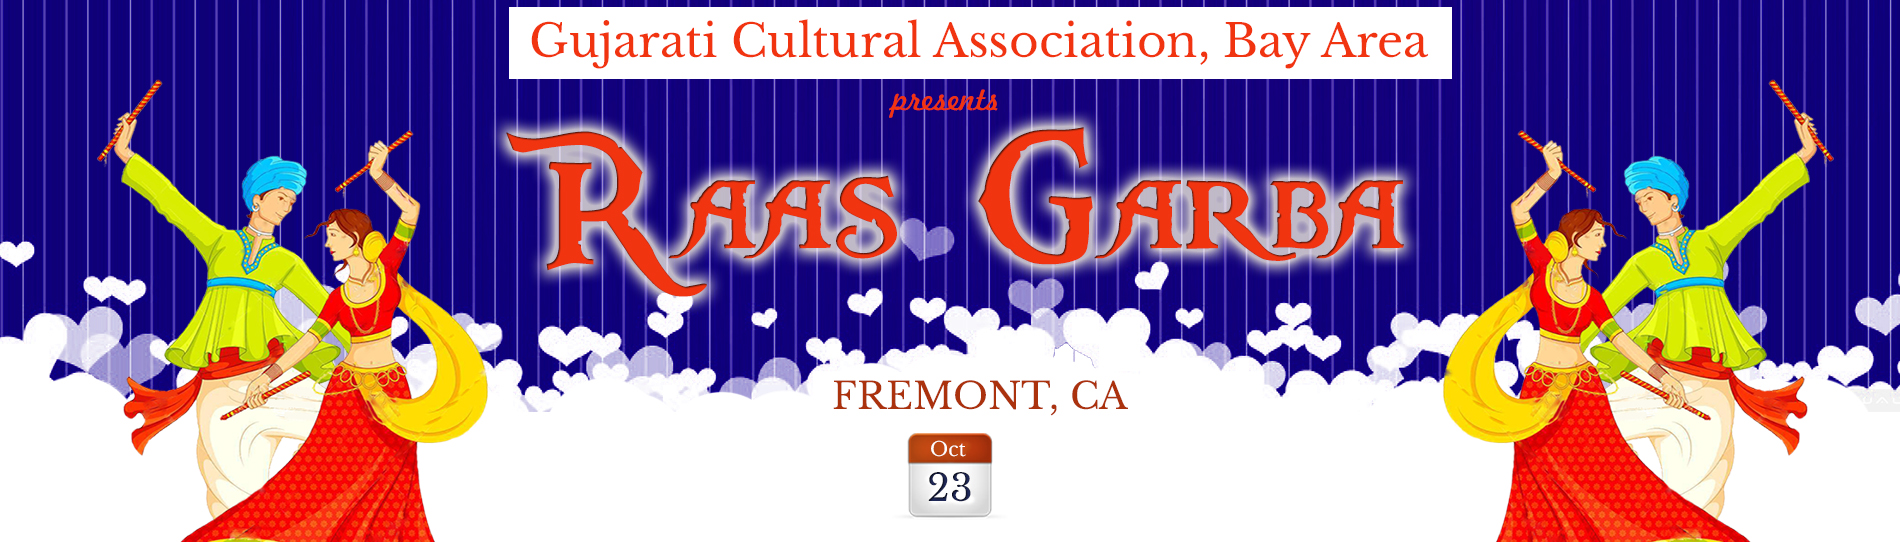 EventMozo GCA Bay Area Raas Garba 2015